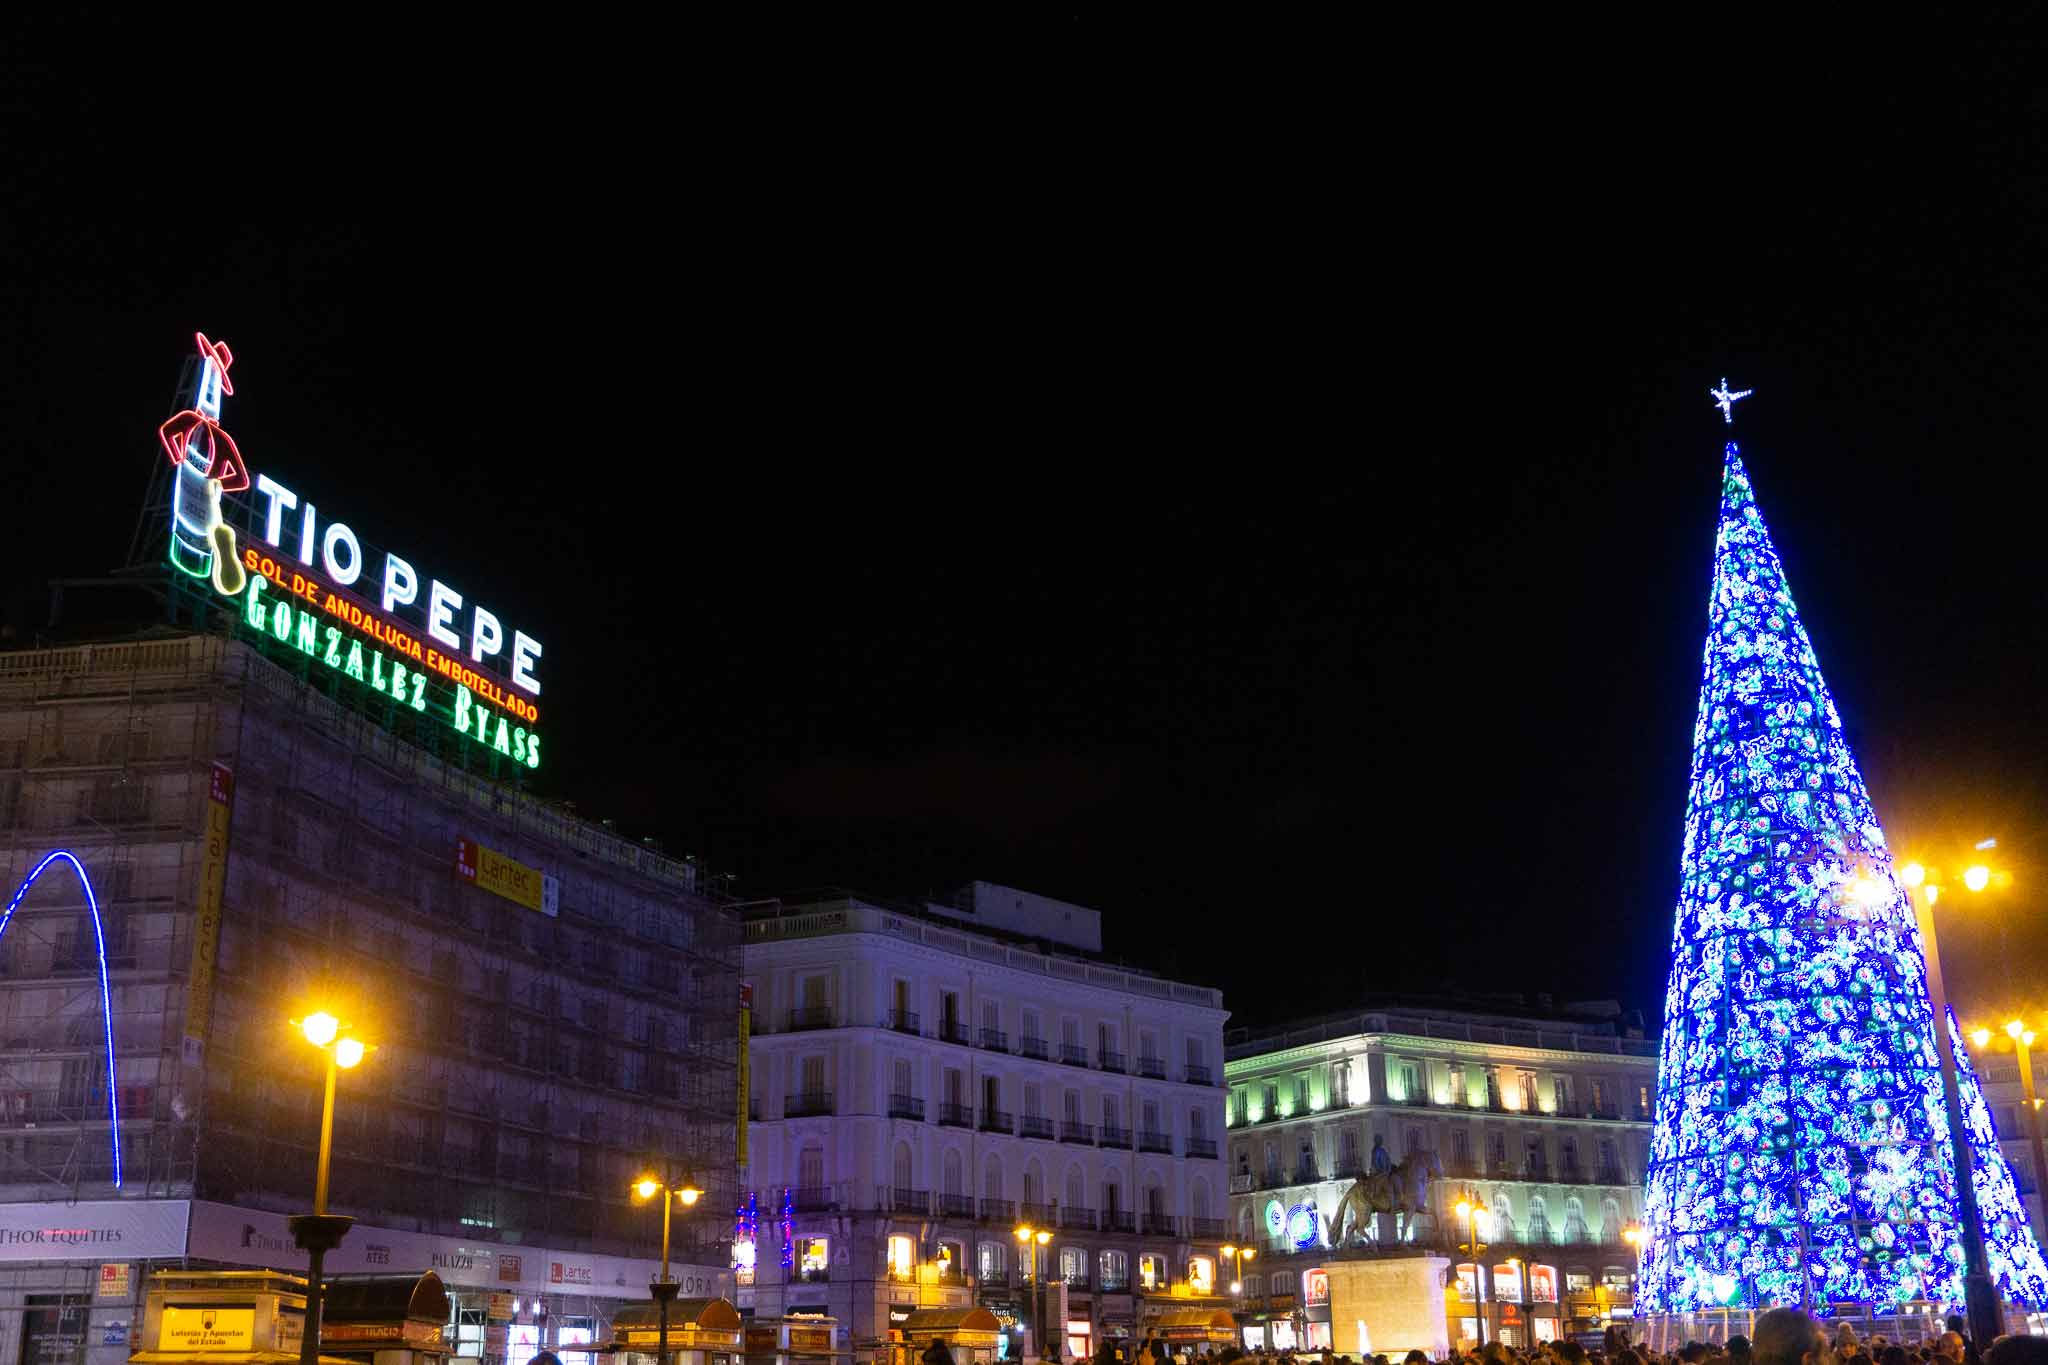 Picture of Puerta del Sol during Christmas in Madrid, Spain with the Tio Pepe sign in the background.